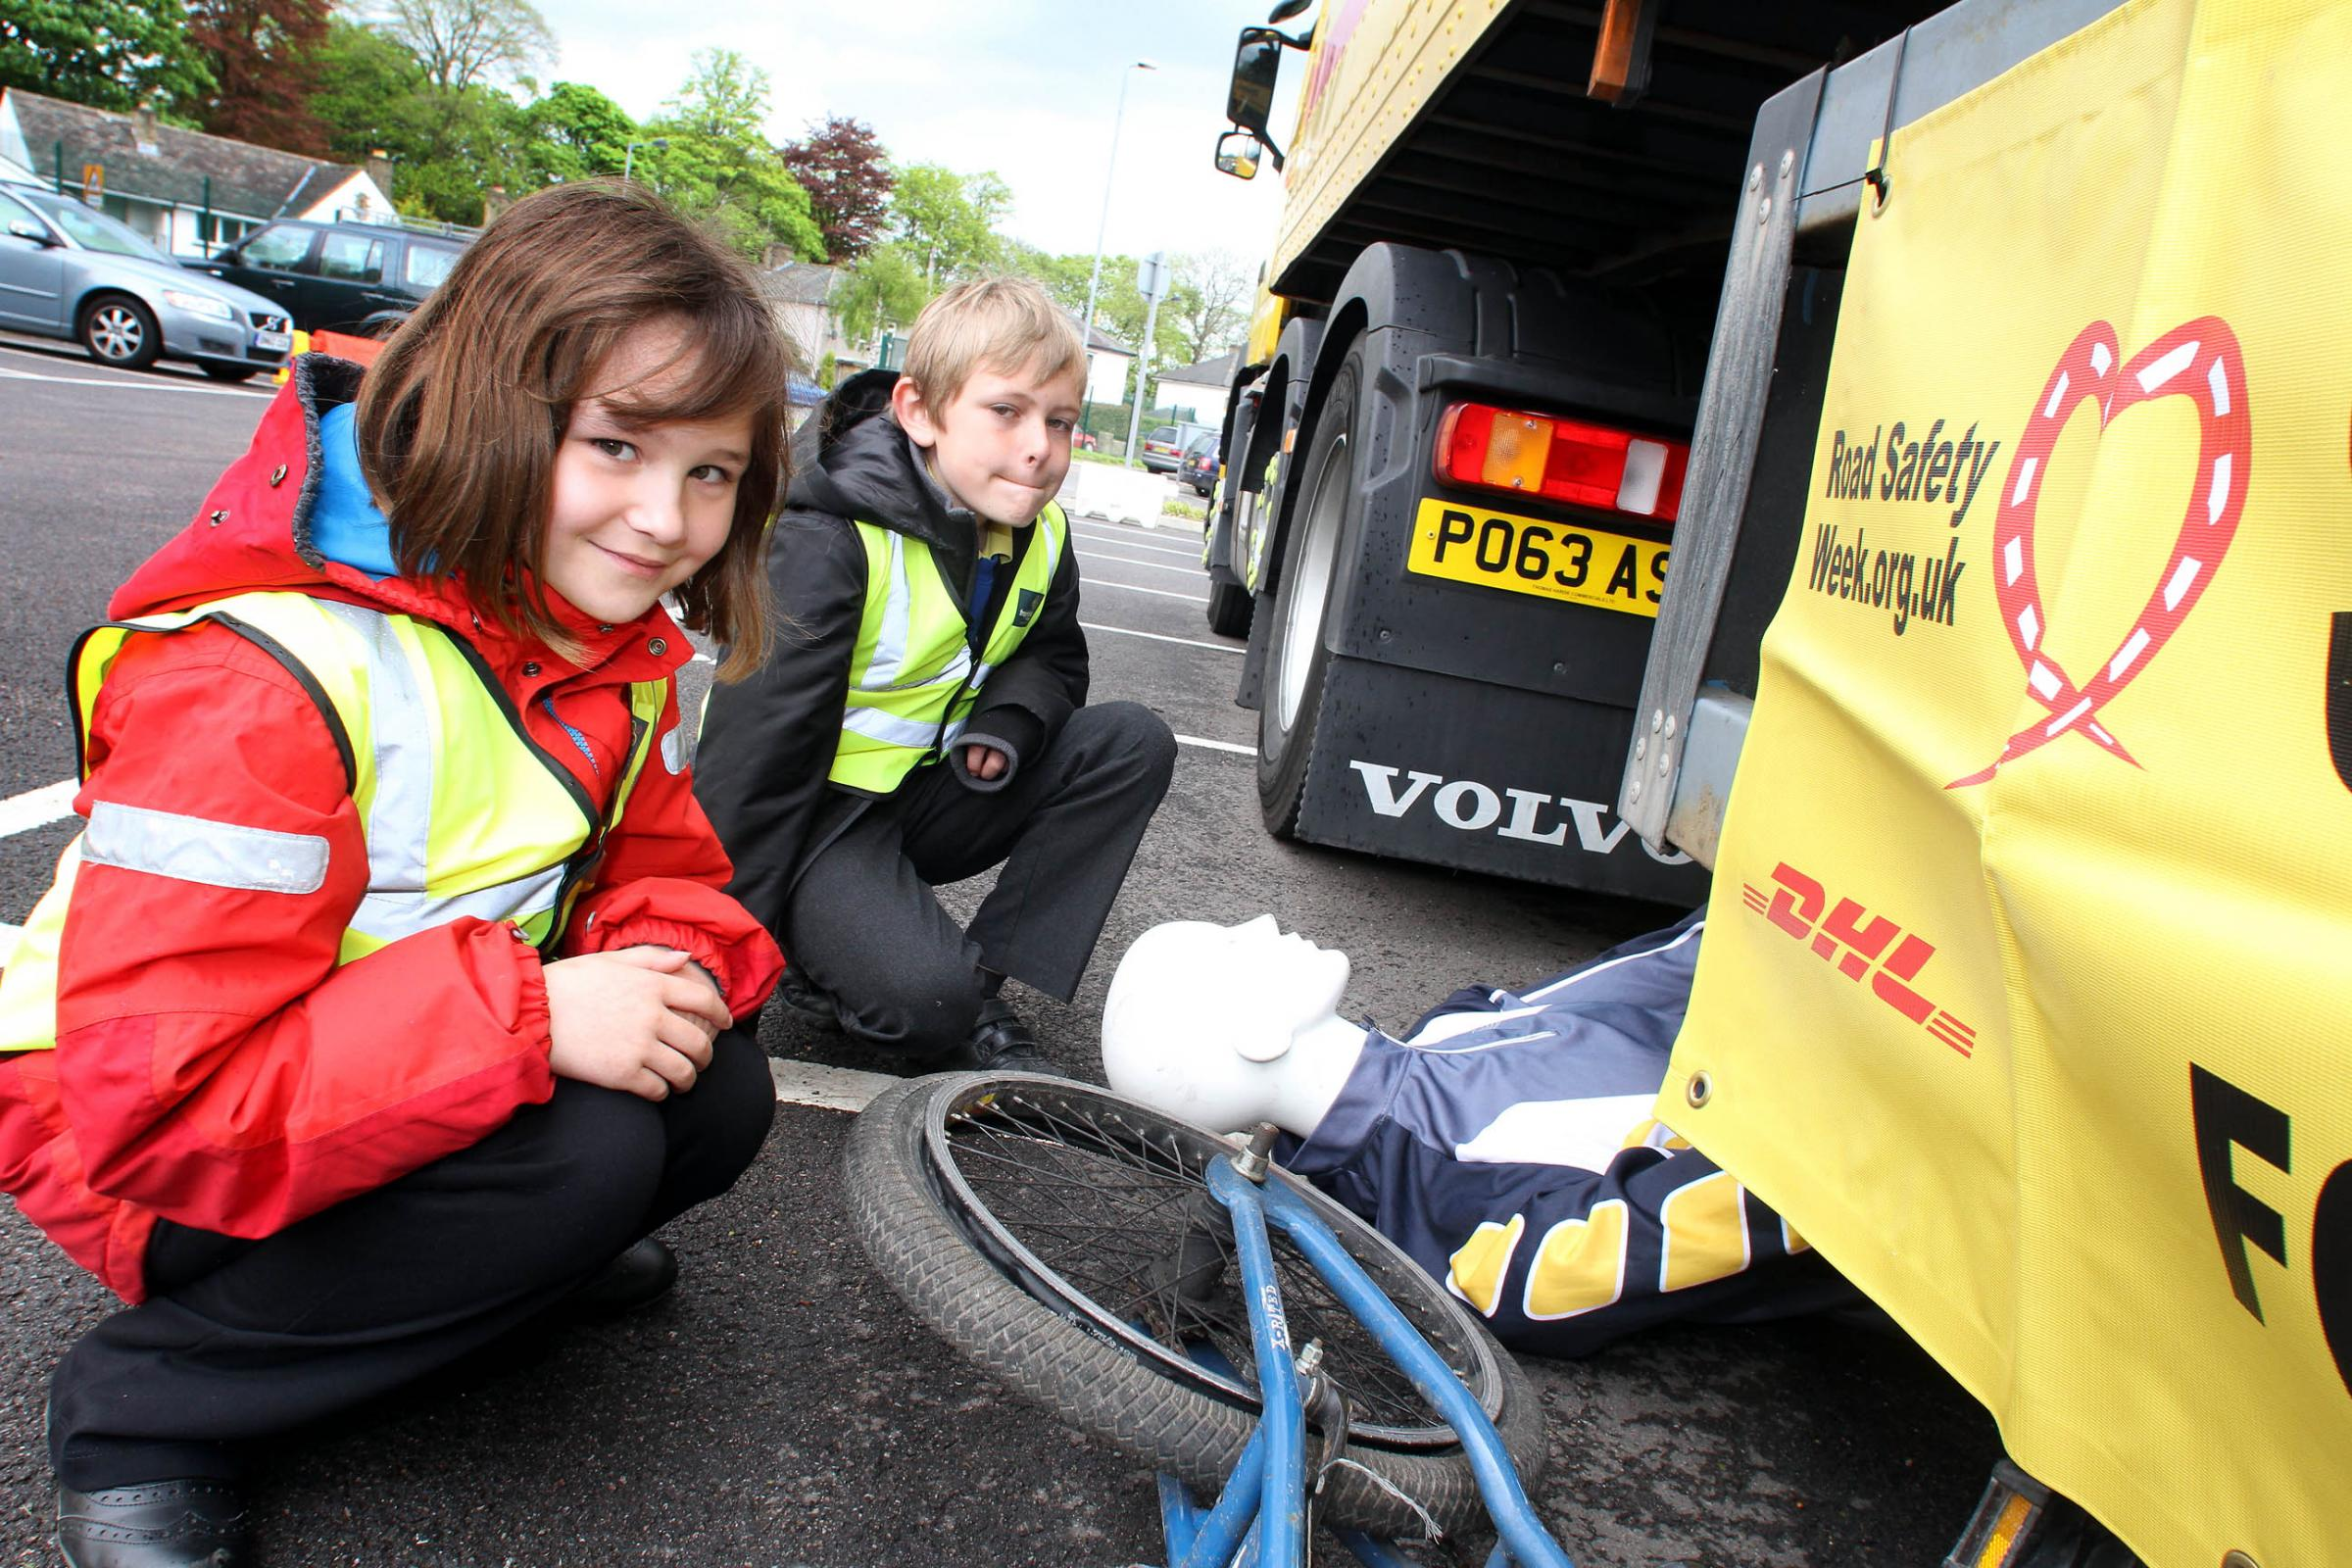 Haworth Primary School pupils Elke Timlin-Bates and Jack Muir get a safety lesson during the visit of the articulated lorries to University Academy Keighley